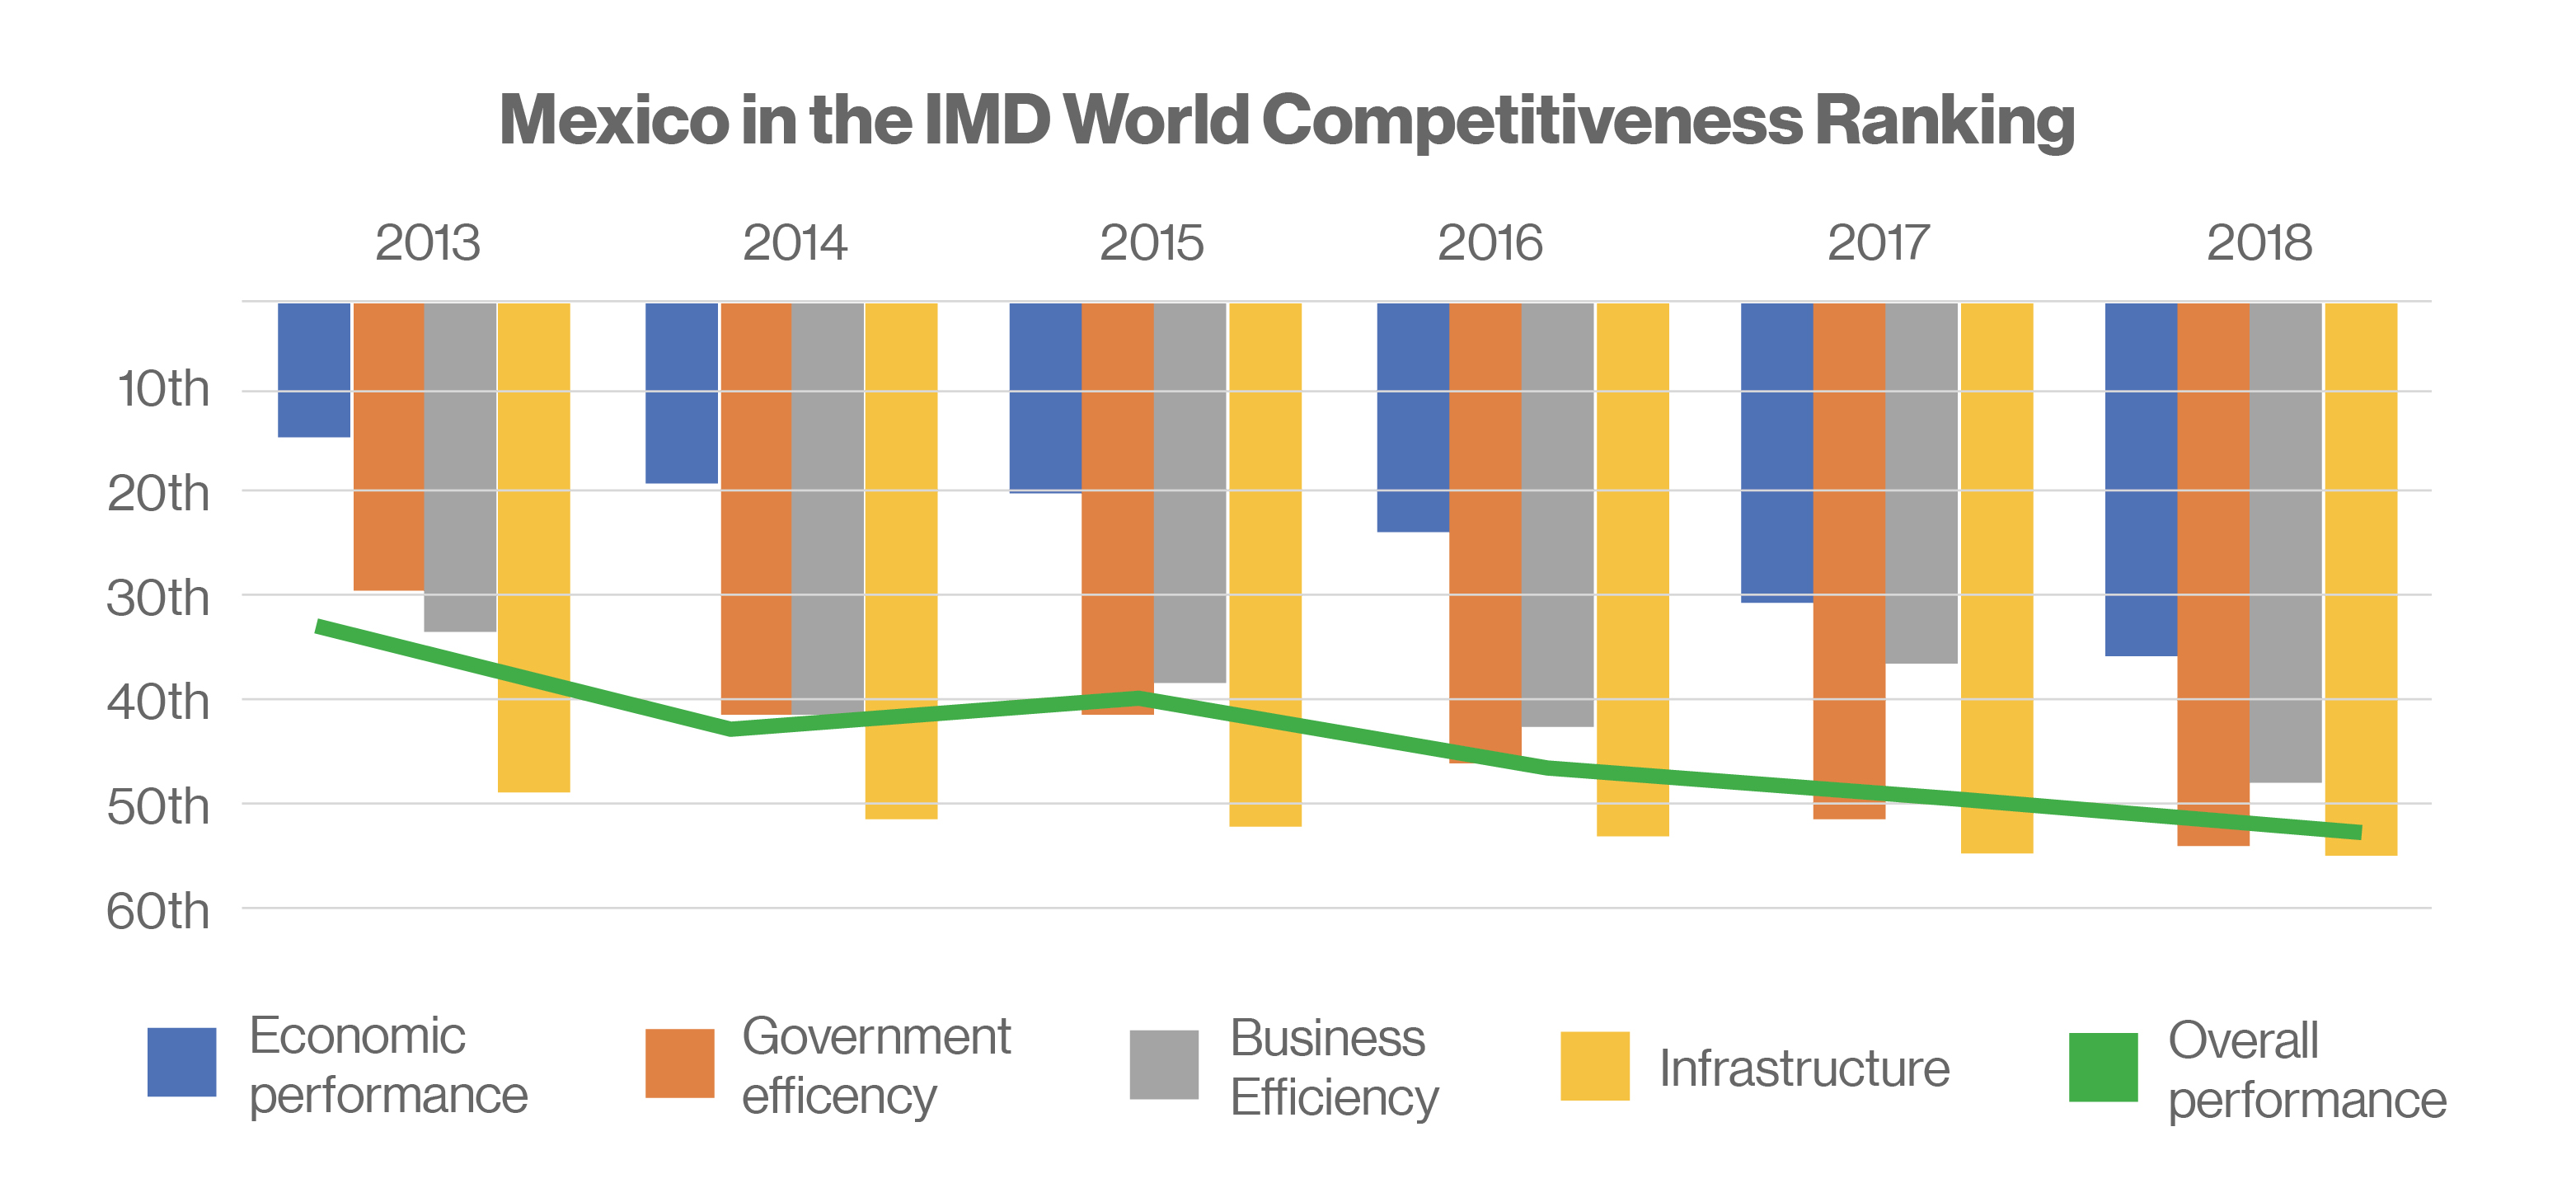 Mexico in the IMD World Competitiveness Ranking